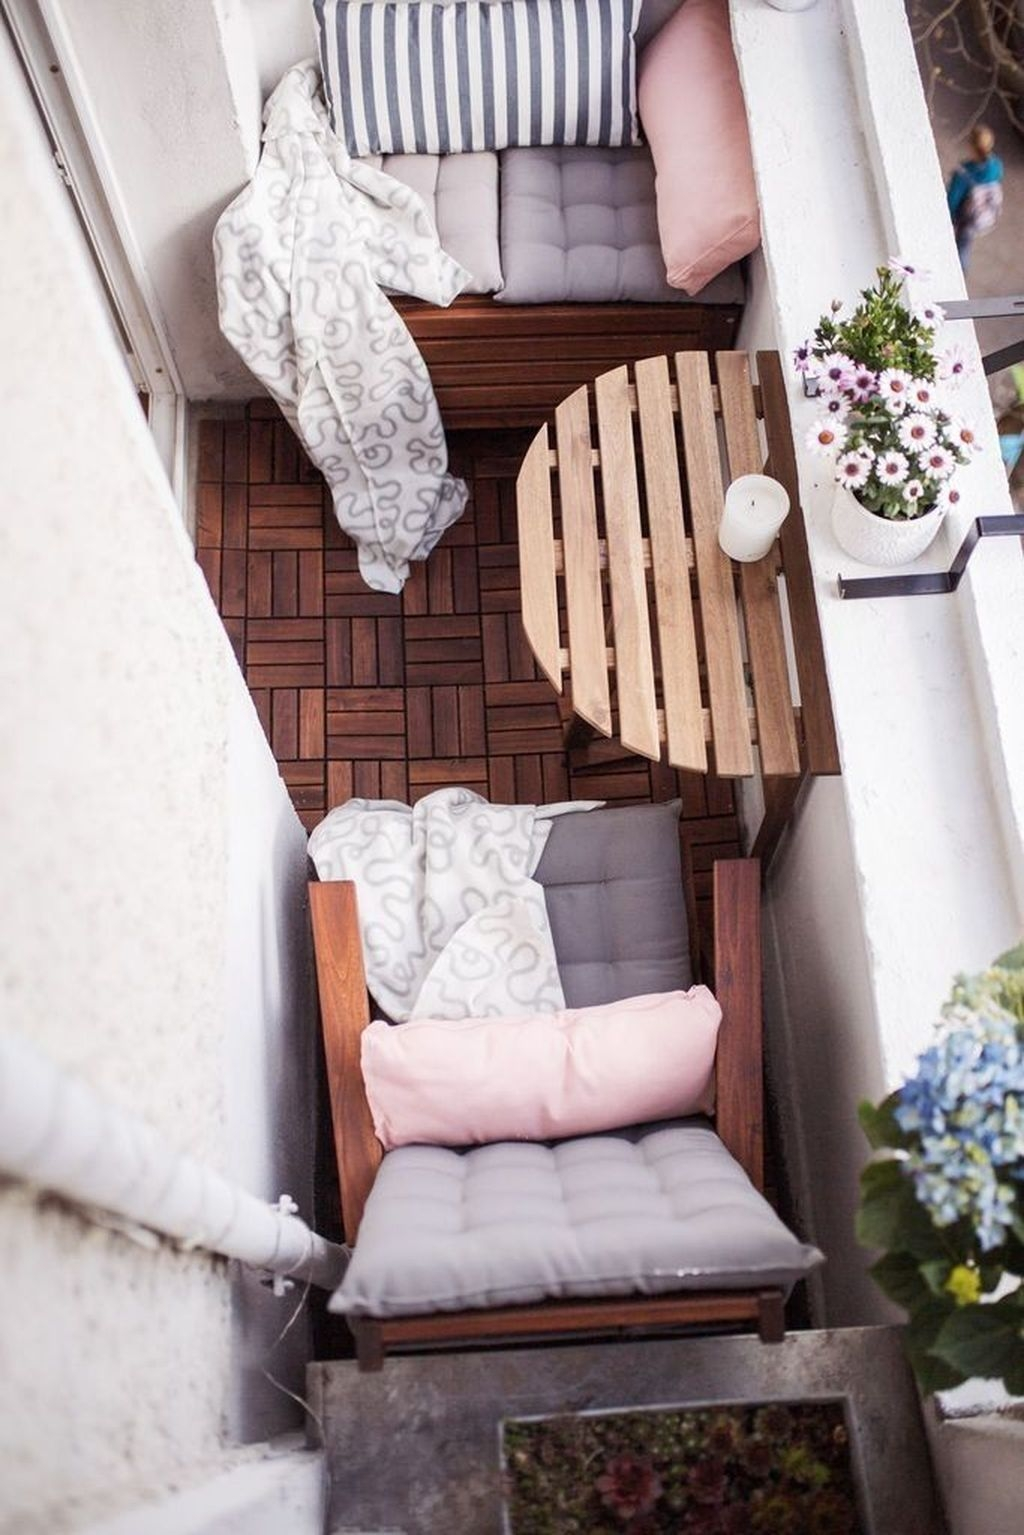 Fascinating Small Balcony Ideas With Relax Seating Area 42